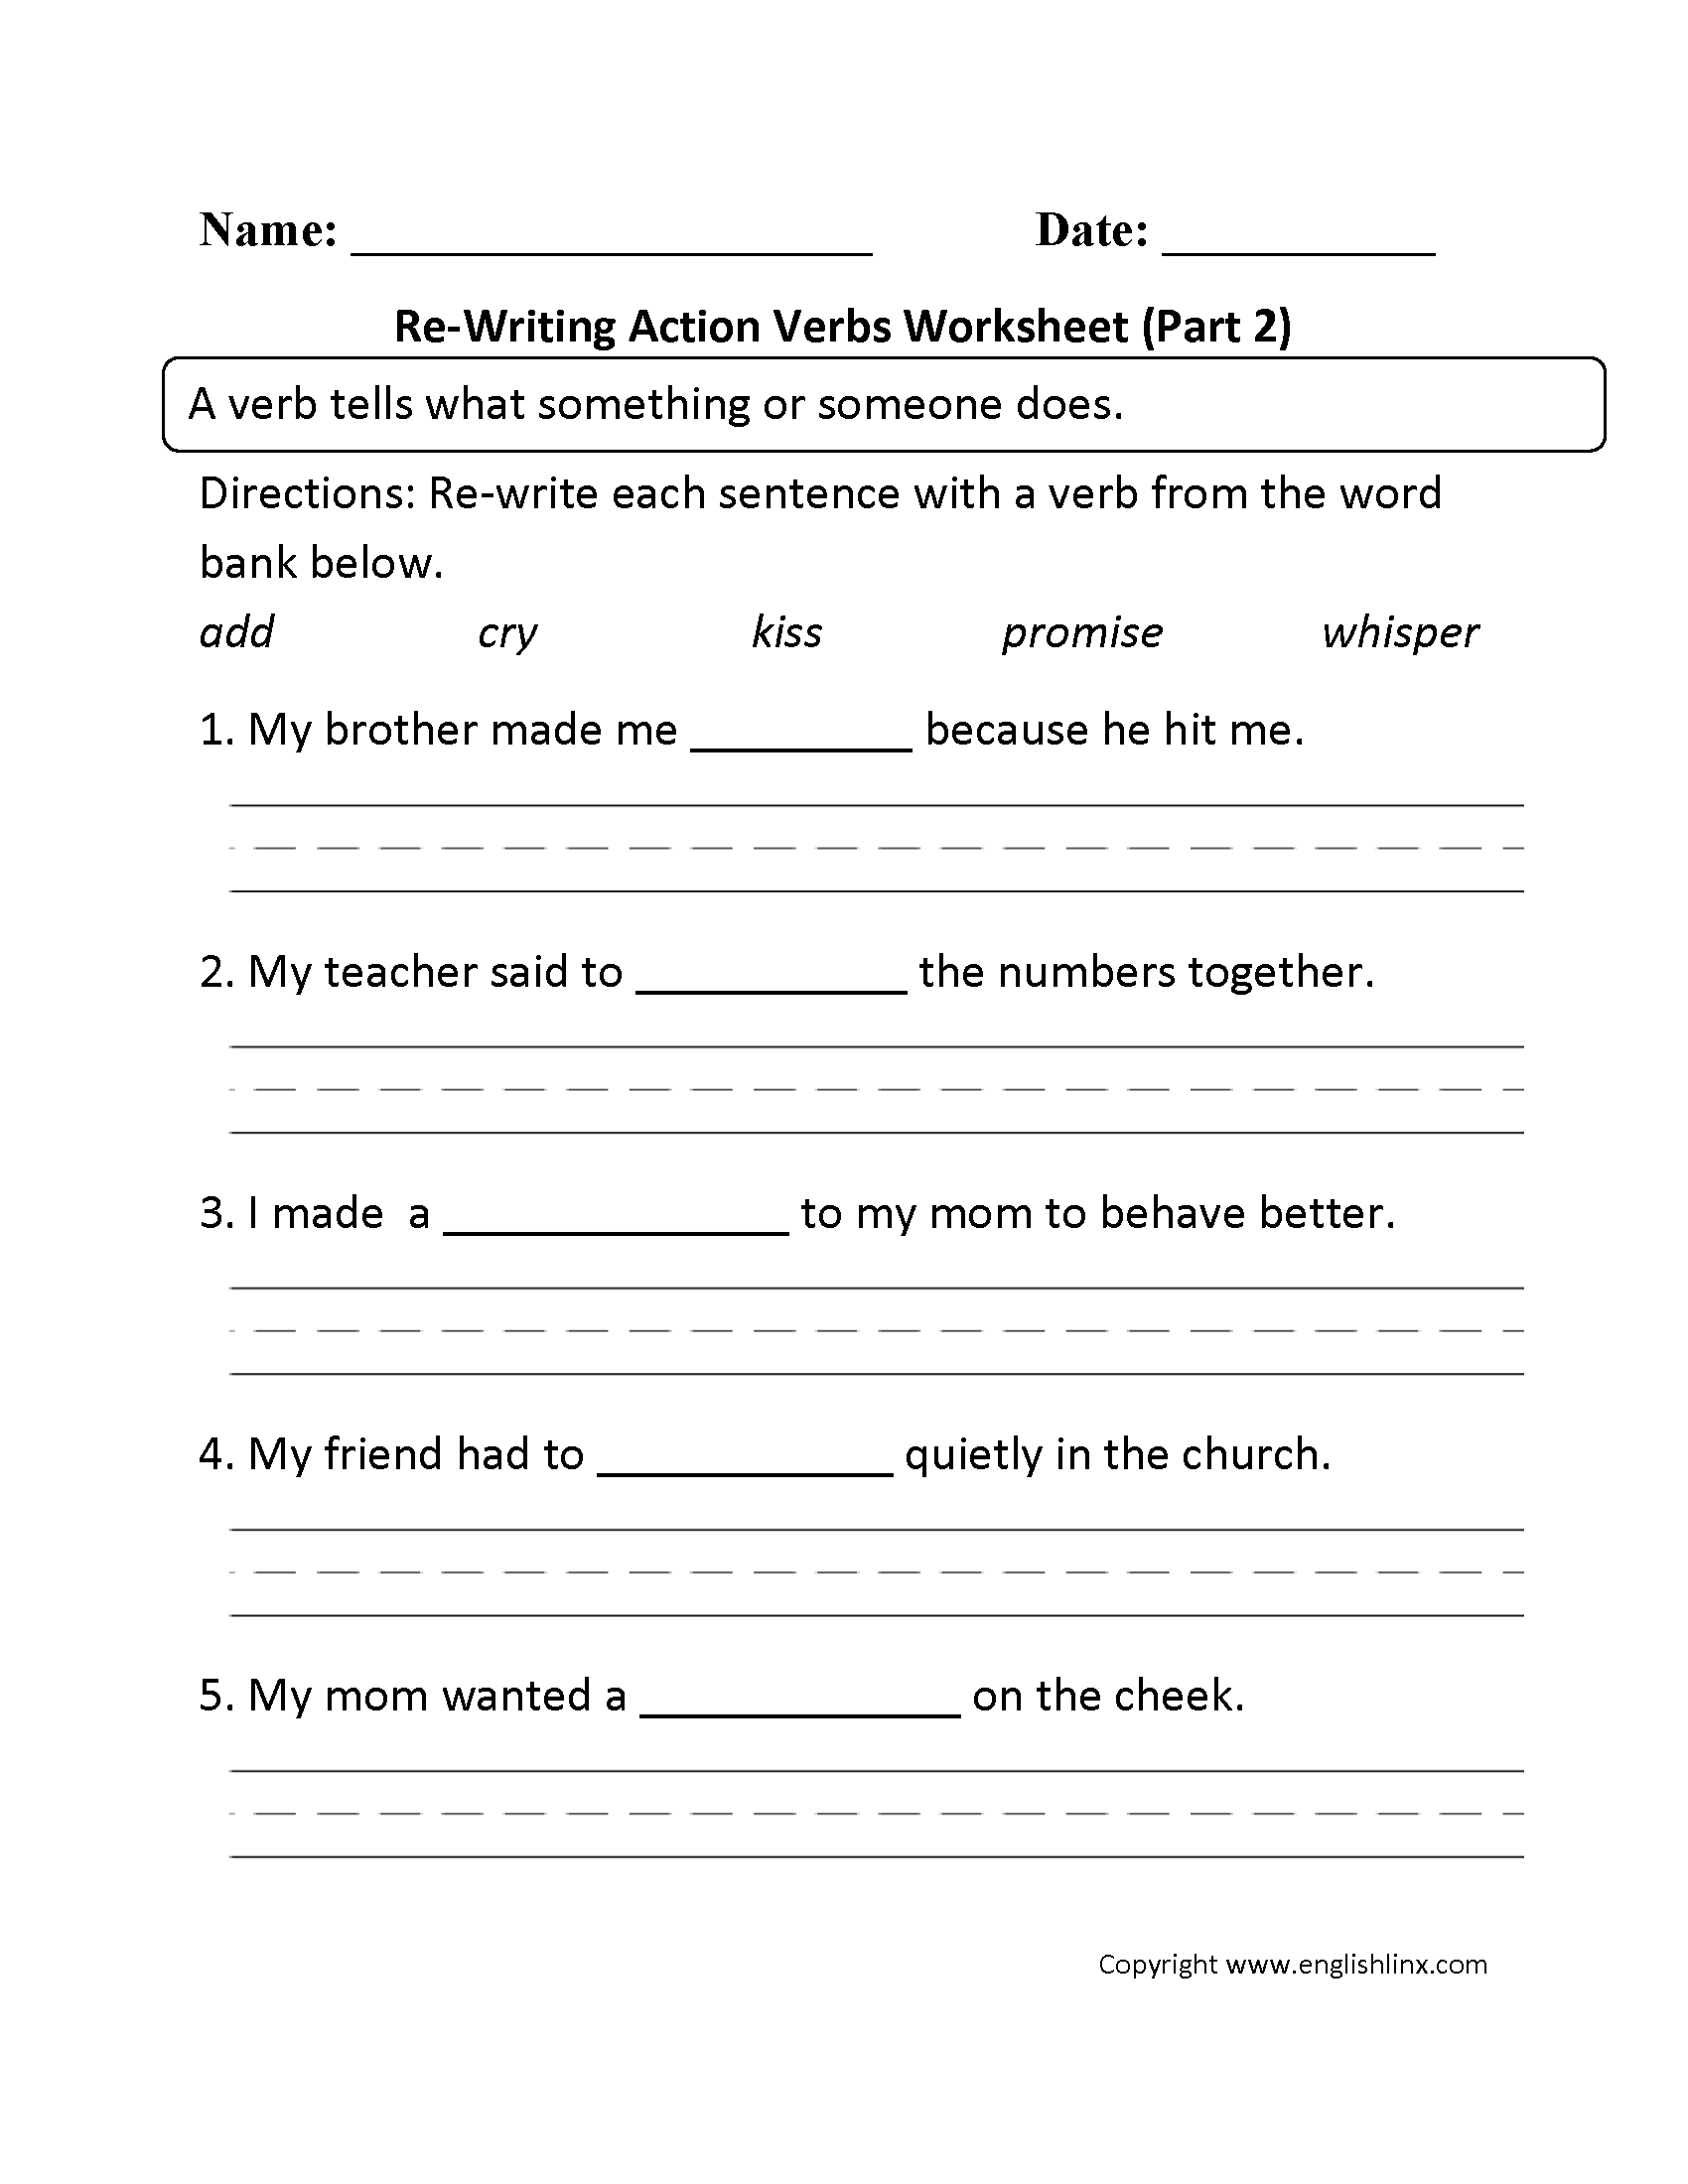 Worksheet Grade 2 Verbs Worksheets verbs worksheets action worksheet part 2